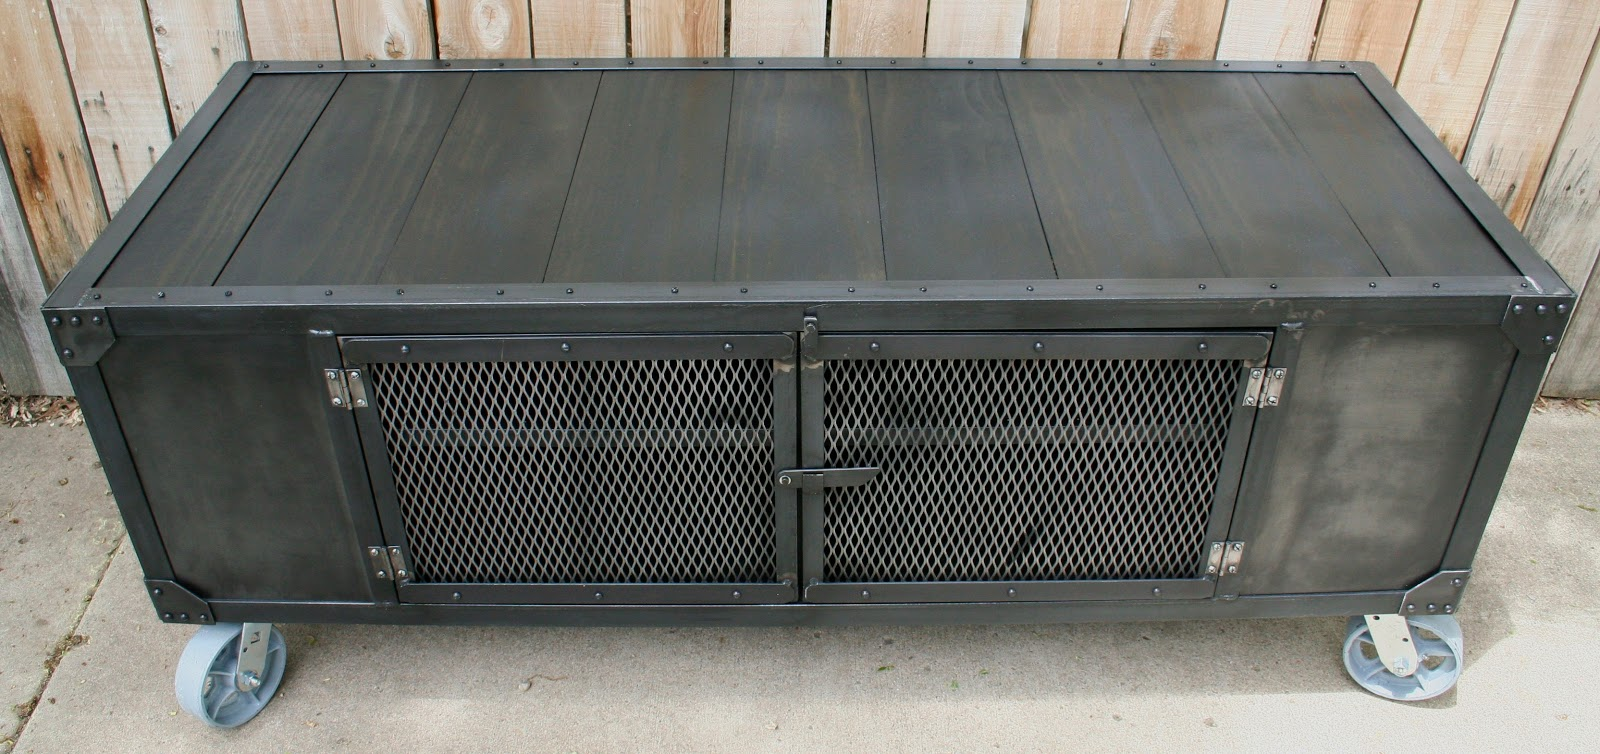 Real Industrial Edge Furniture Llc Custom Industrial Scrap Metal Cabinet